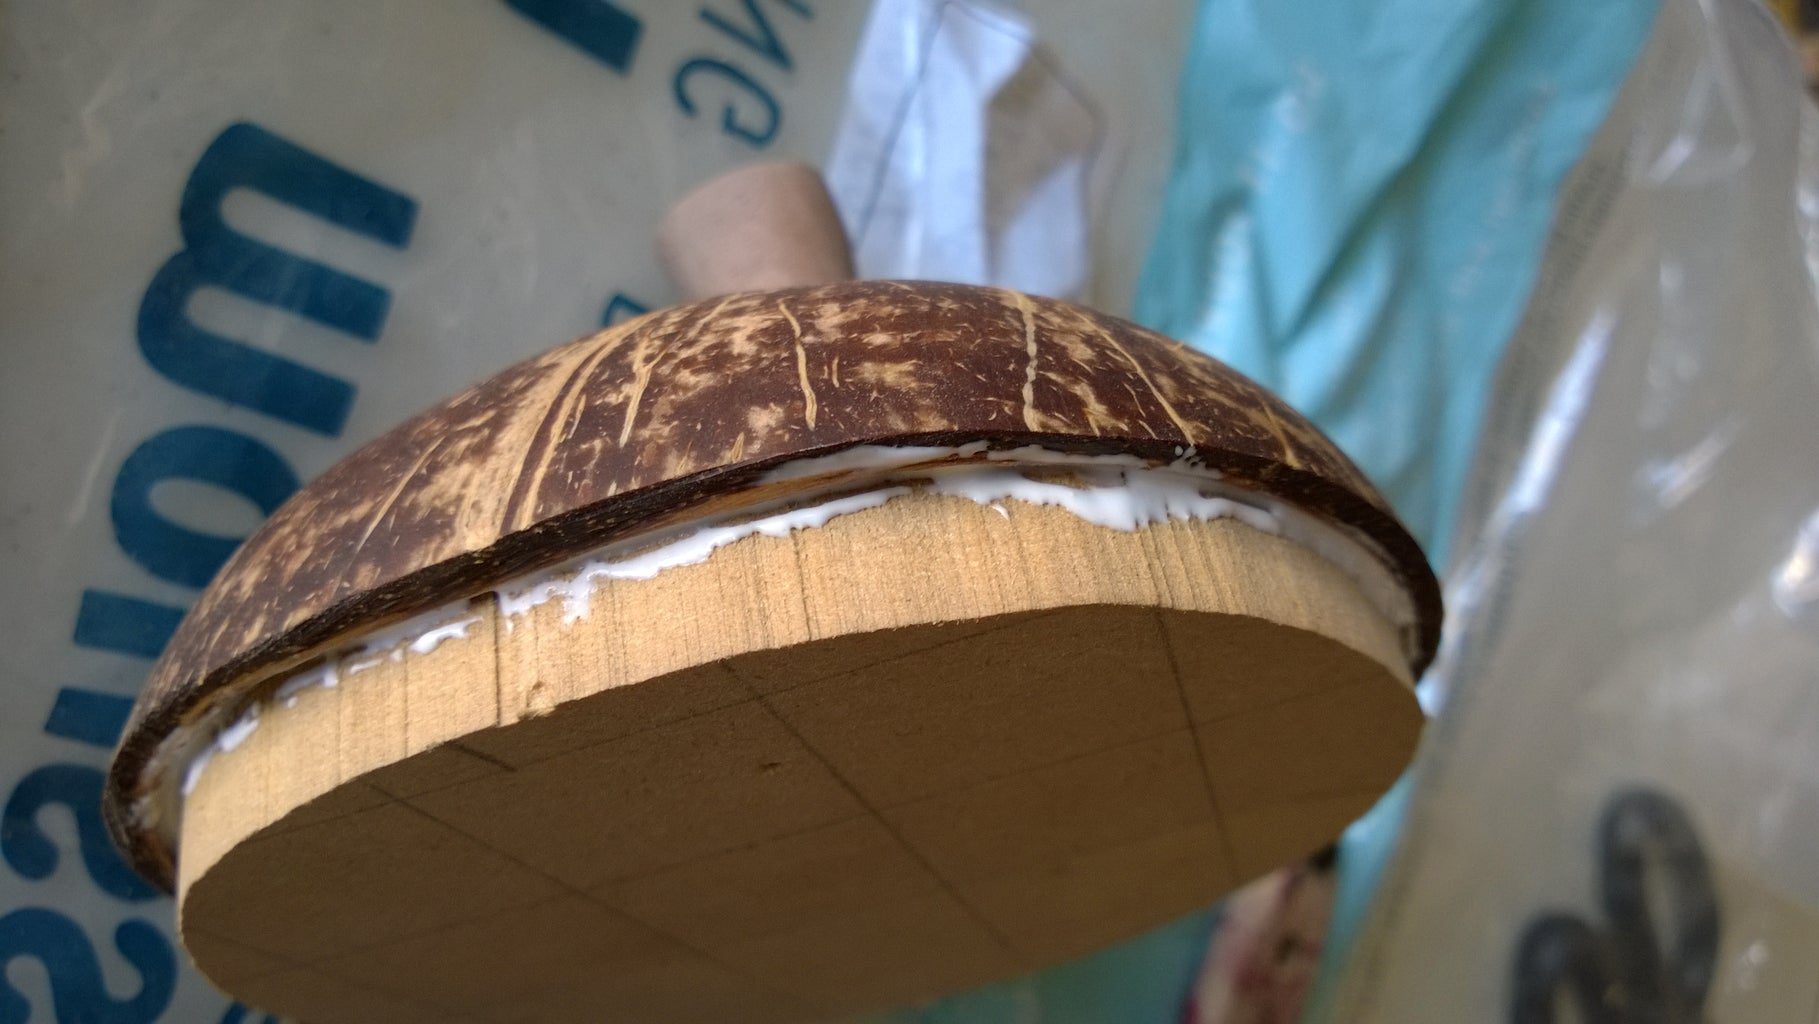 Glue the Lid Insert, Paint the Interior, Varnish the Exterior